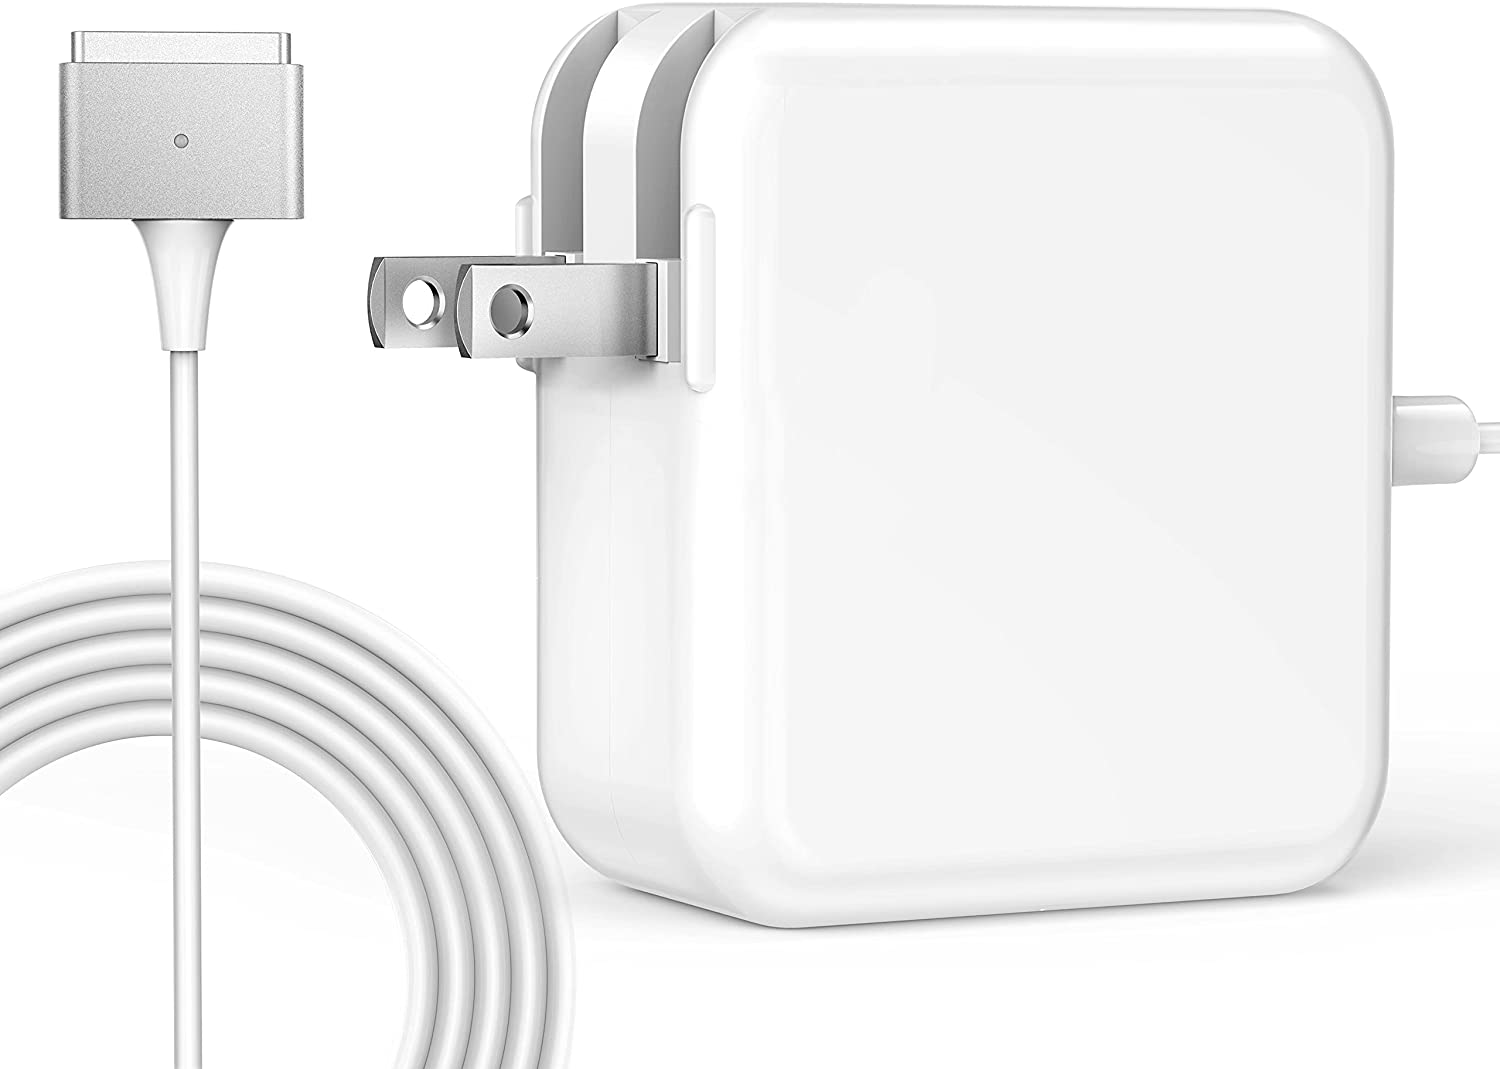 Tissyee MacBook Air Charger, 45W Magnetic Mag2 T-Tip Charger, Universal Charger for Mac Book Air 11-inch 13 inch 2012Late